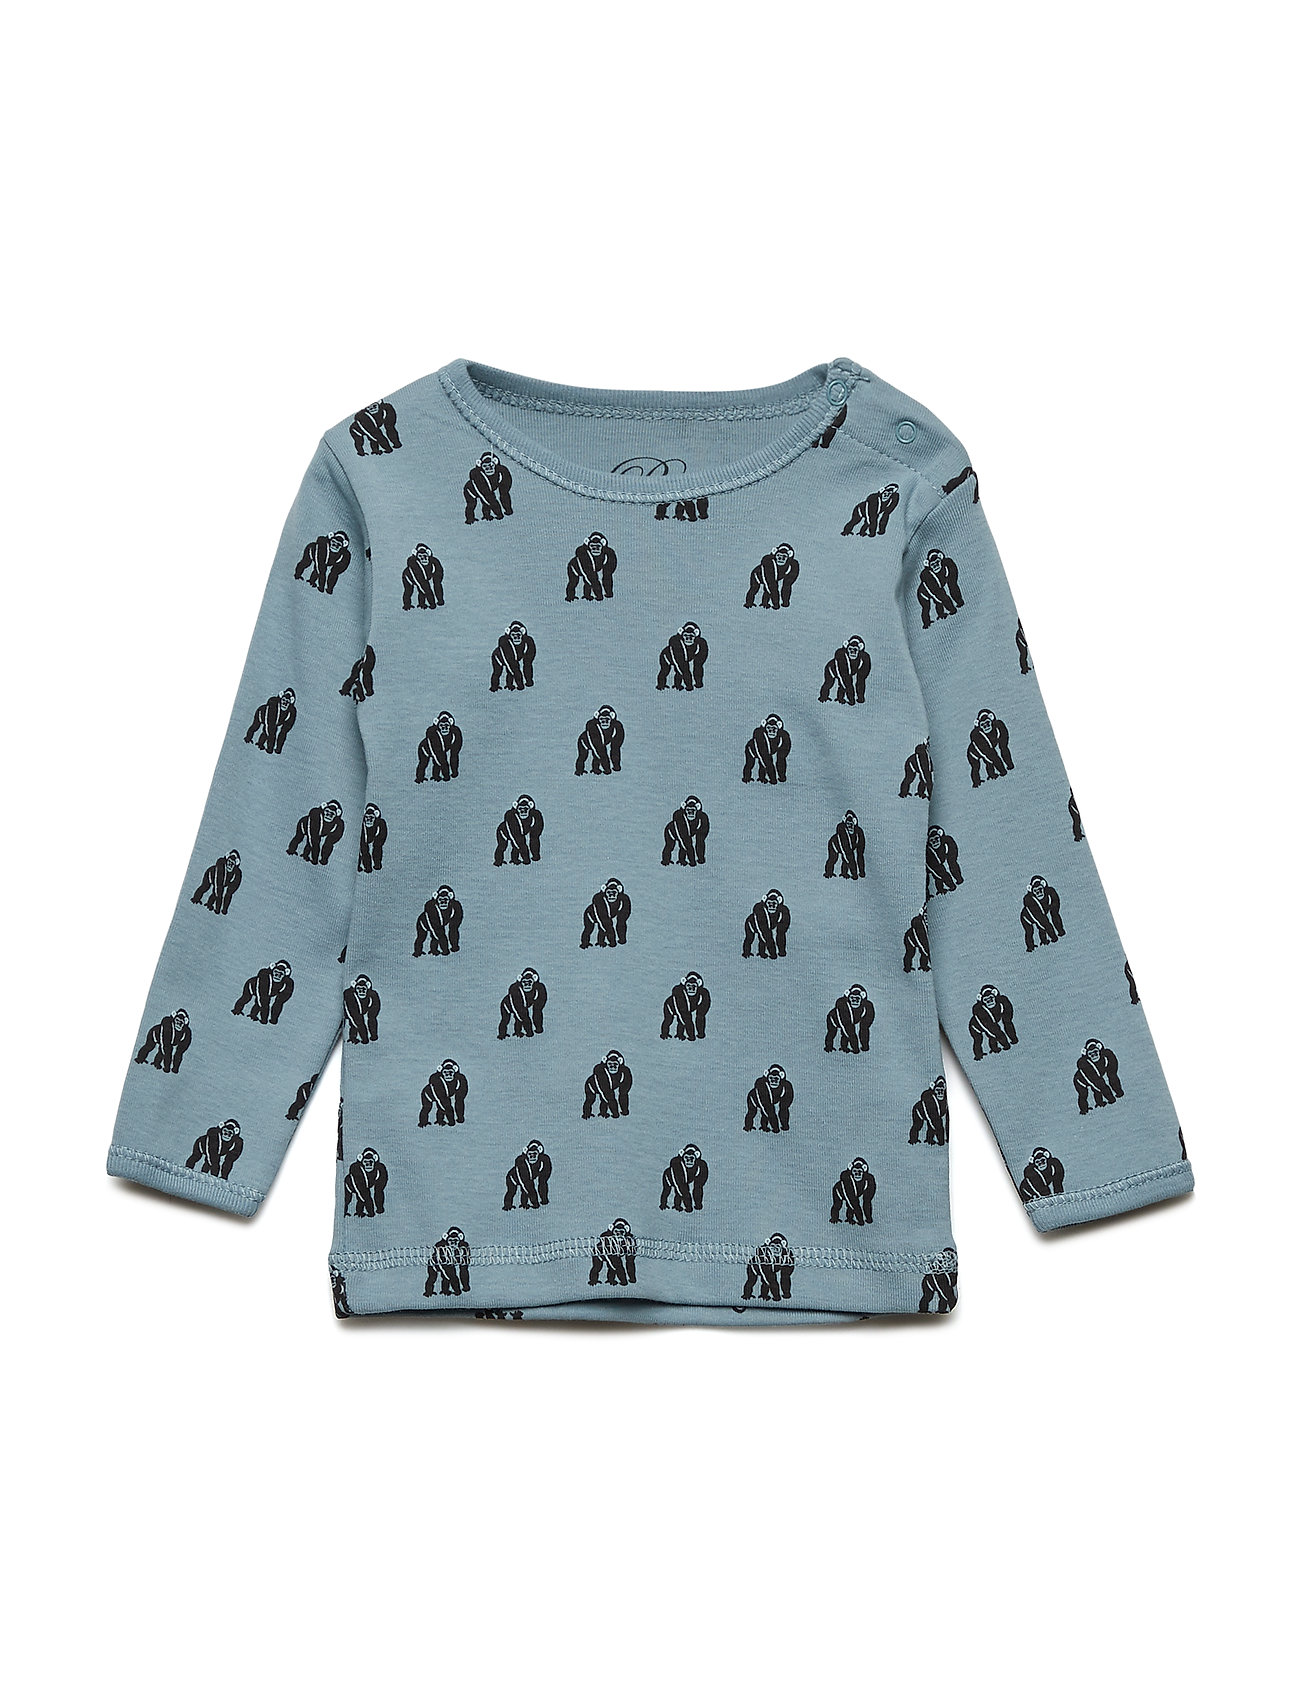 Petit by Sofie Schnoor T-shirt long sleeve - MONKEY PRINT